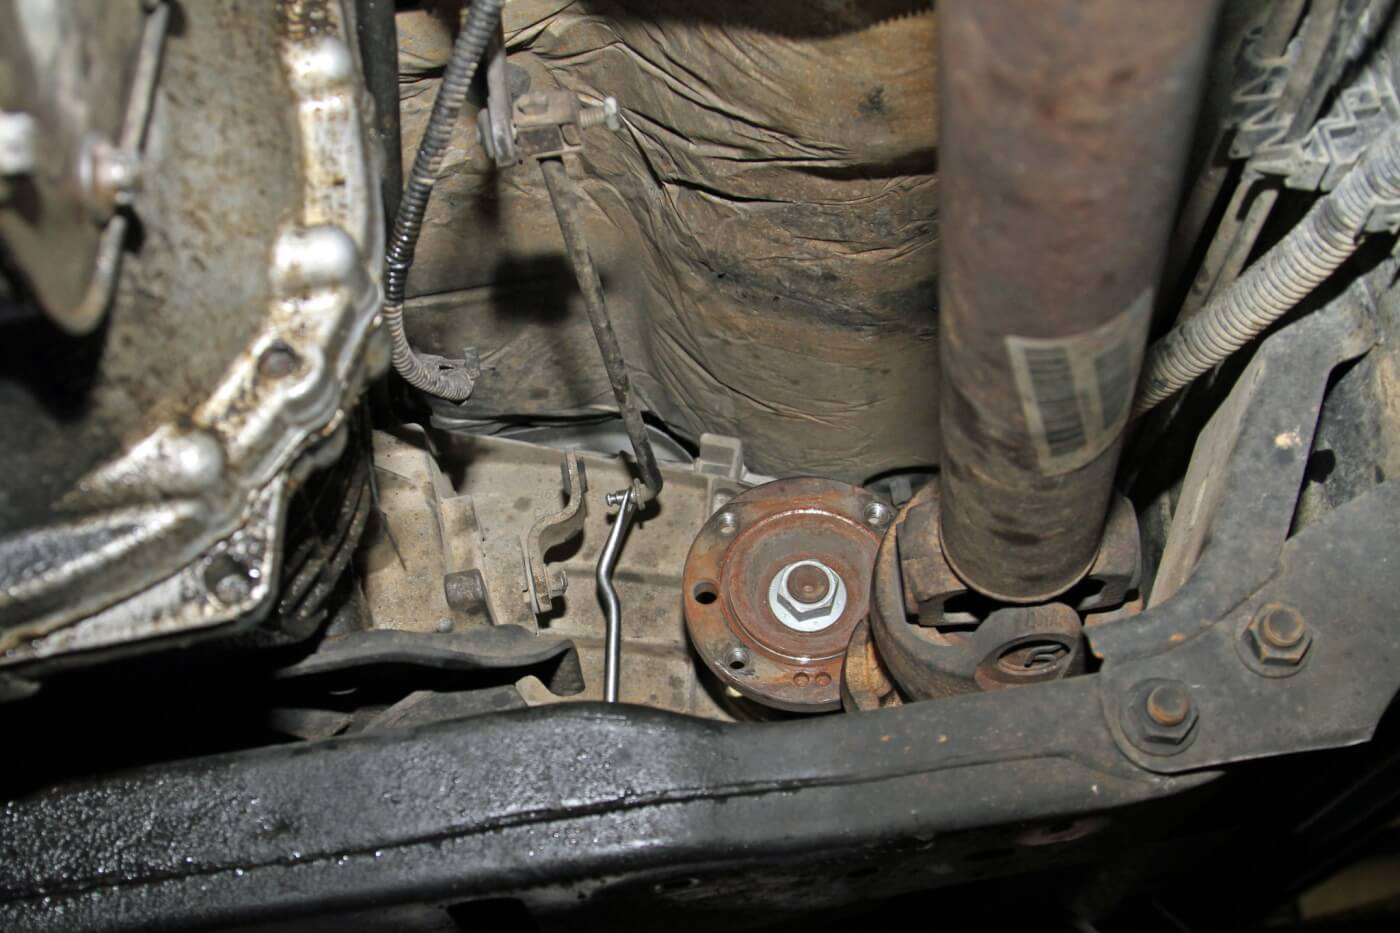 4. On the front side of the transfer case, Meraz unbolted the front drive shaft and secured it to the frame with a bungee cord; then he removed the linkage from the transfer case.